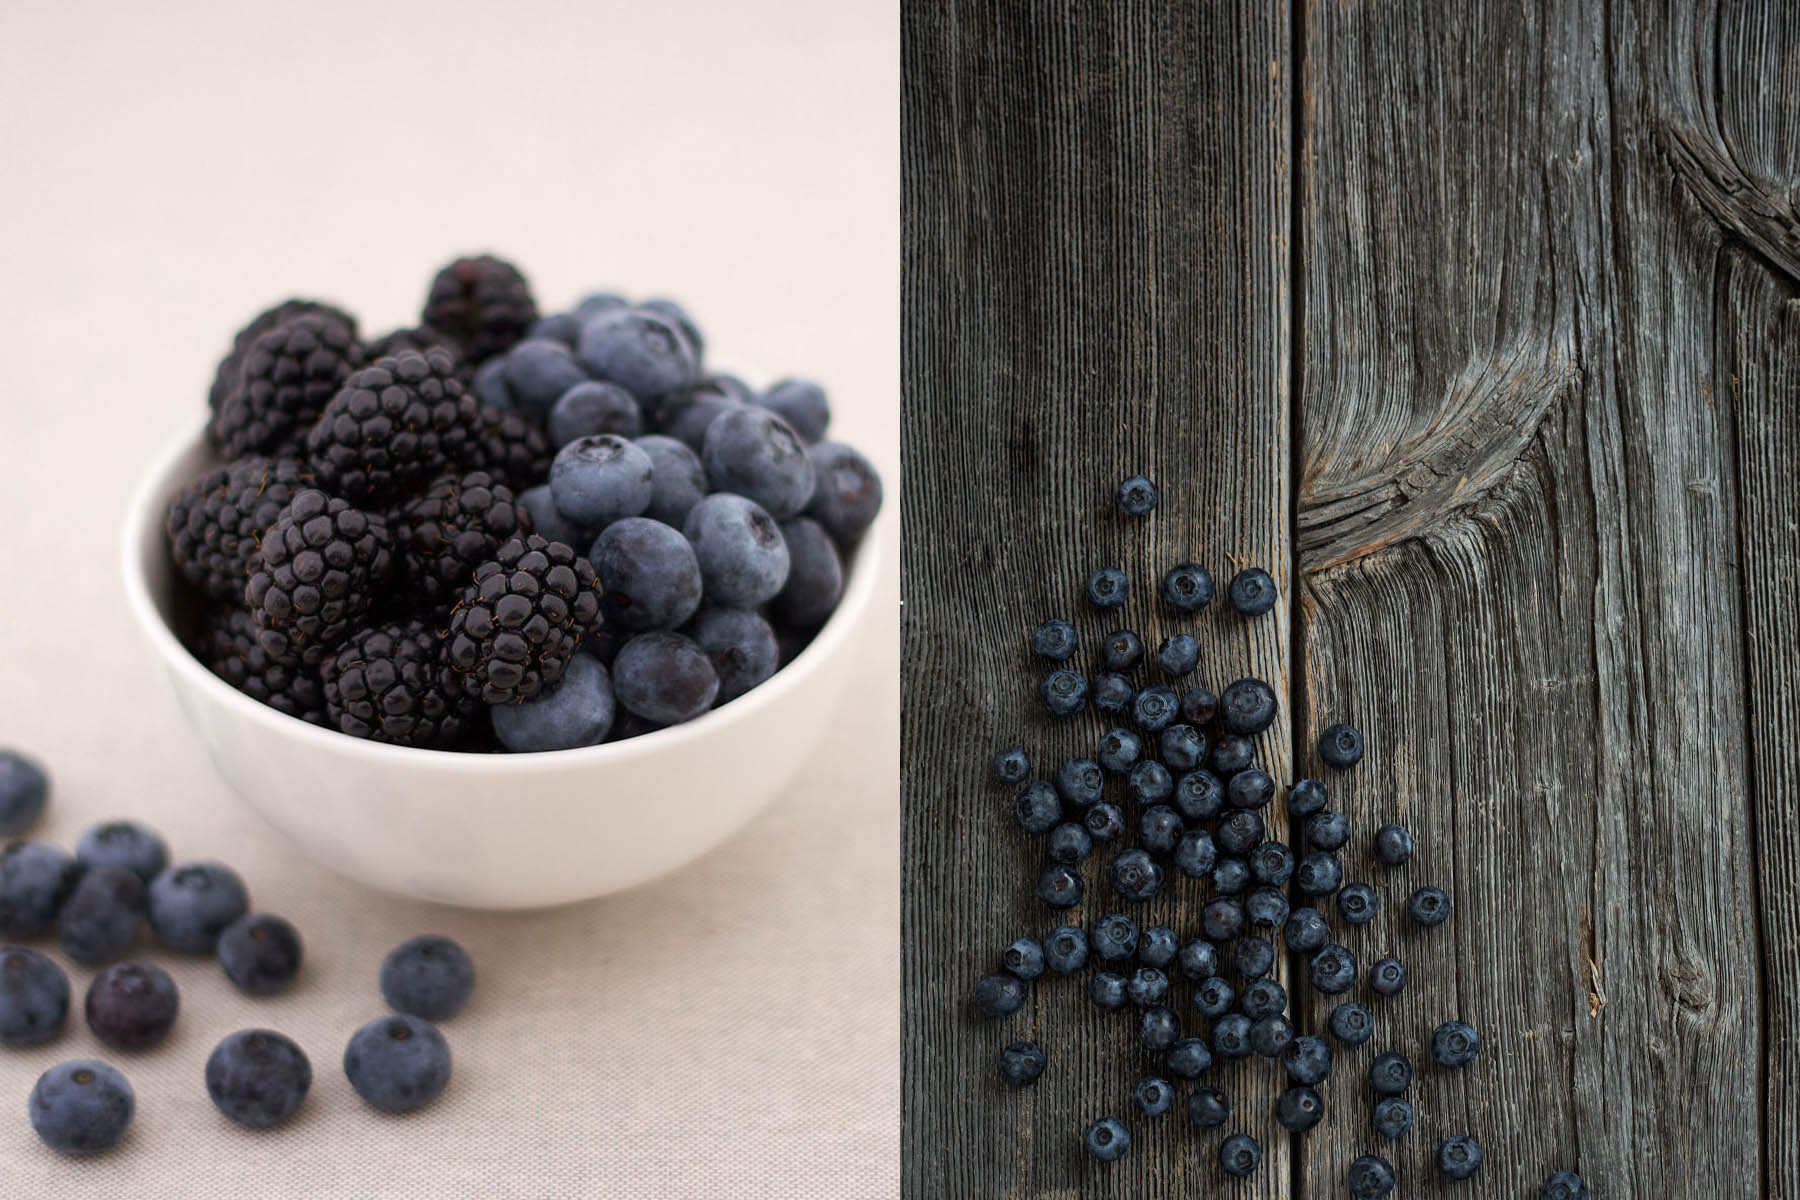 blueberries-wood-gabetoth